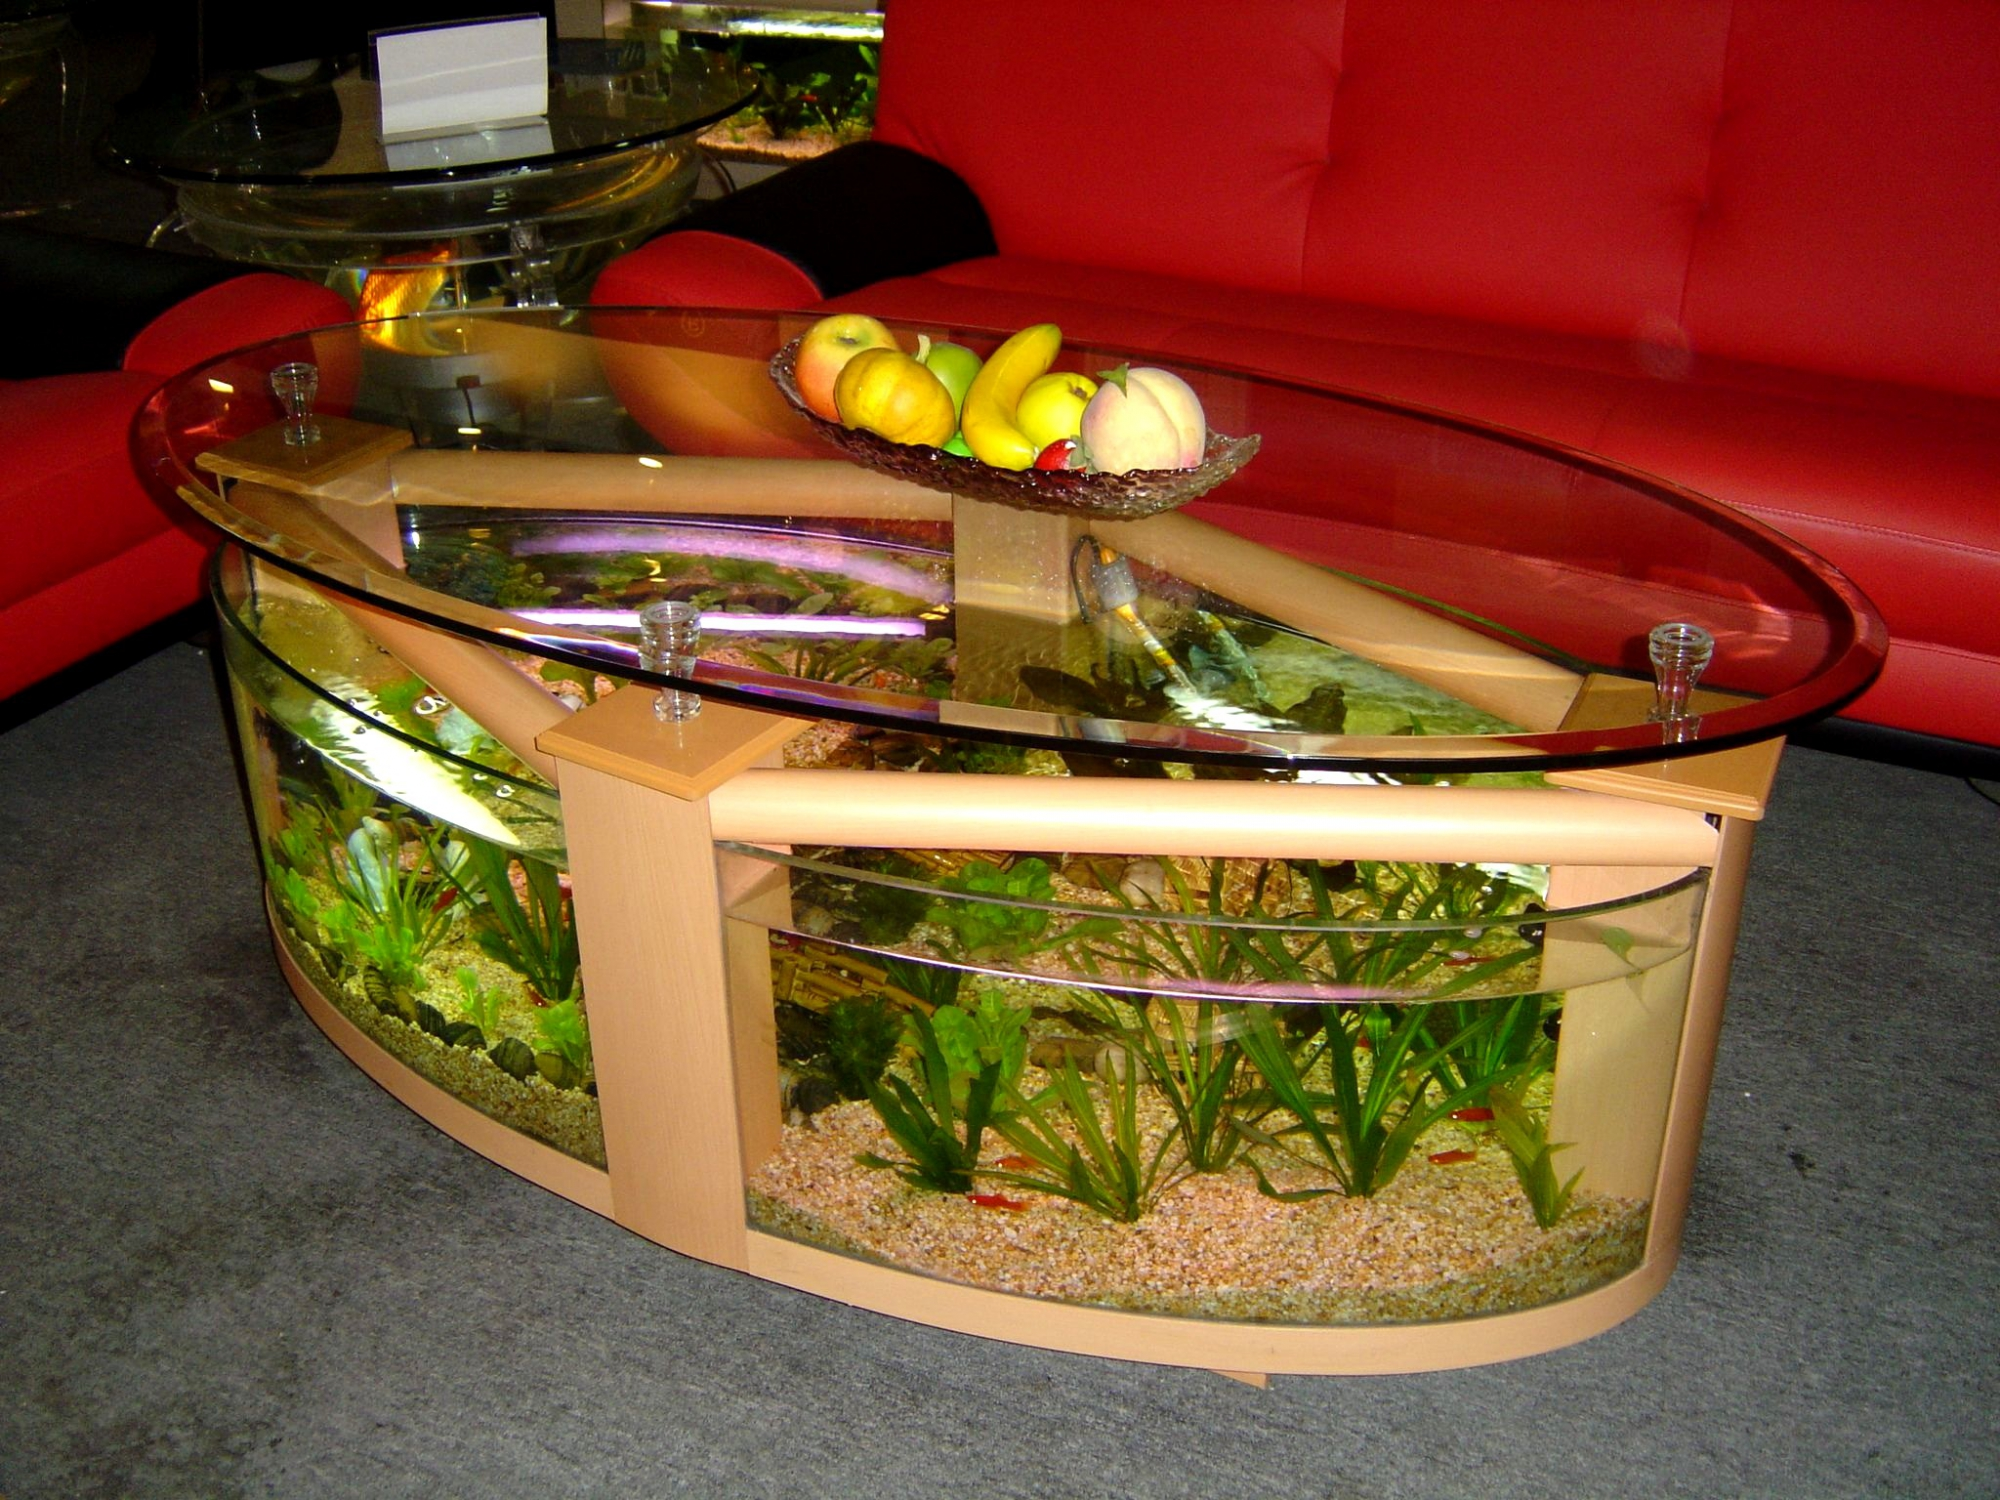 Coolest Aquariums EVER!